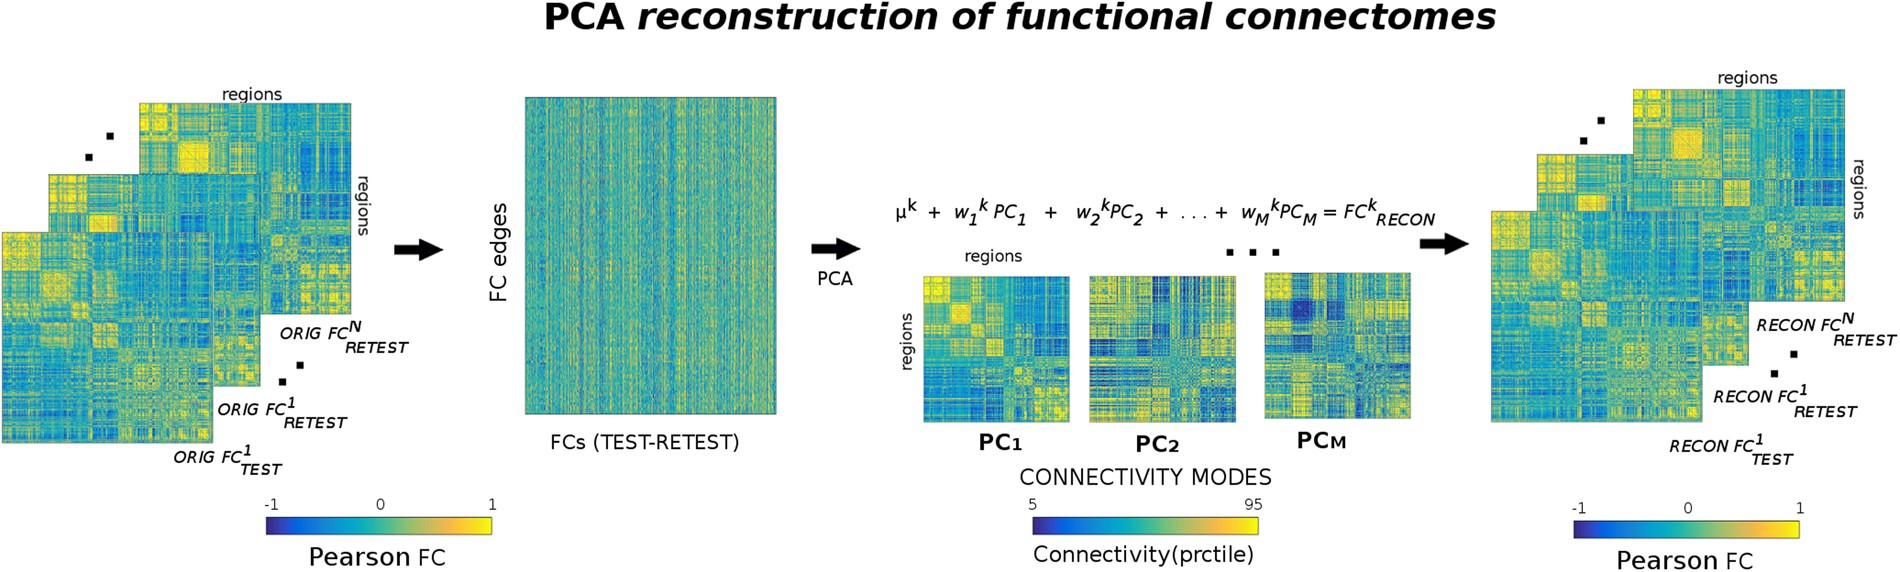 The quest for identifiability in human functional connectomes ...